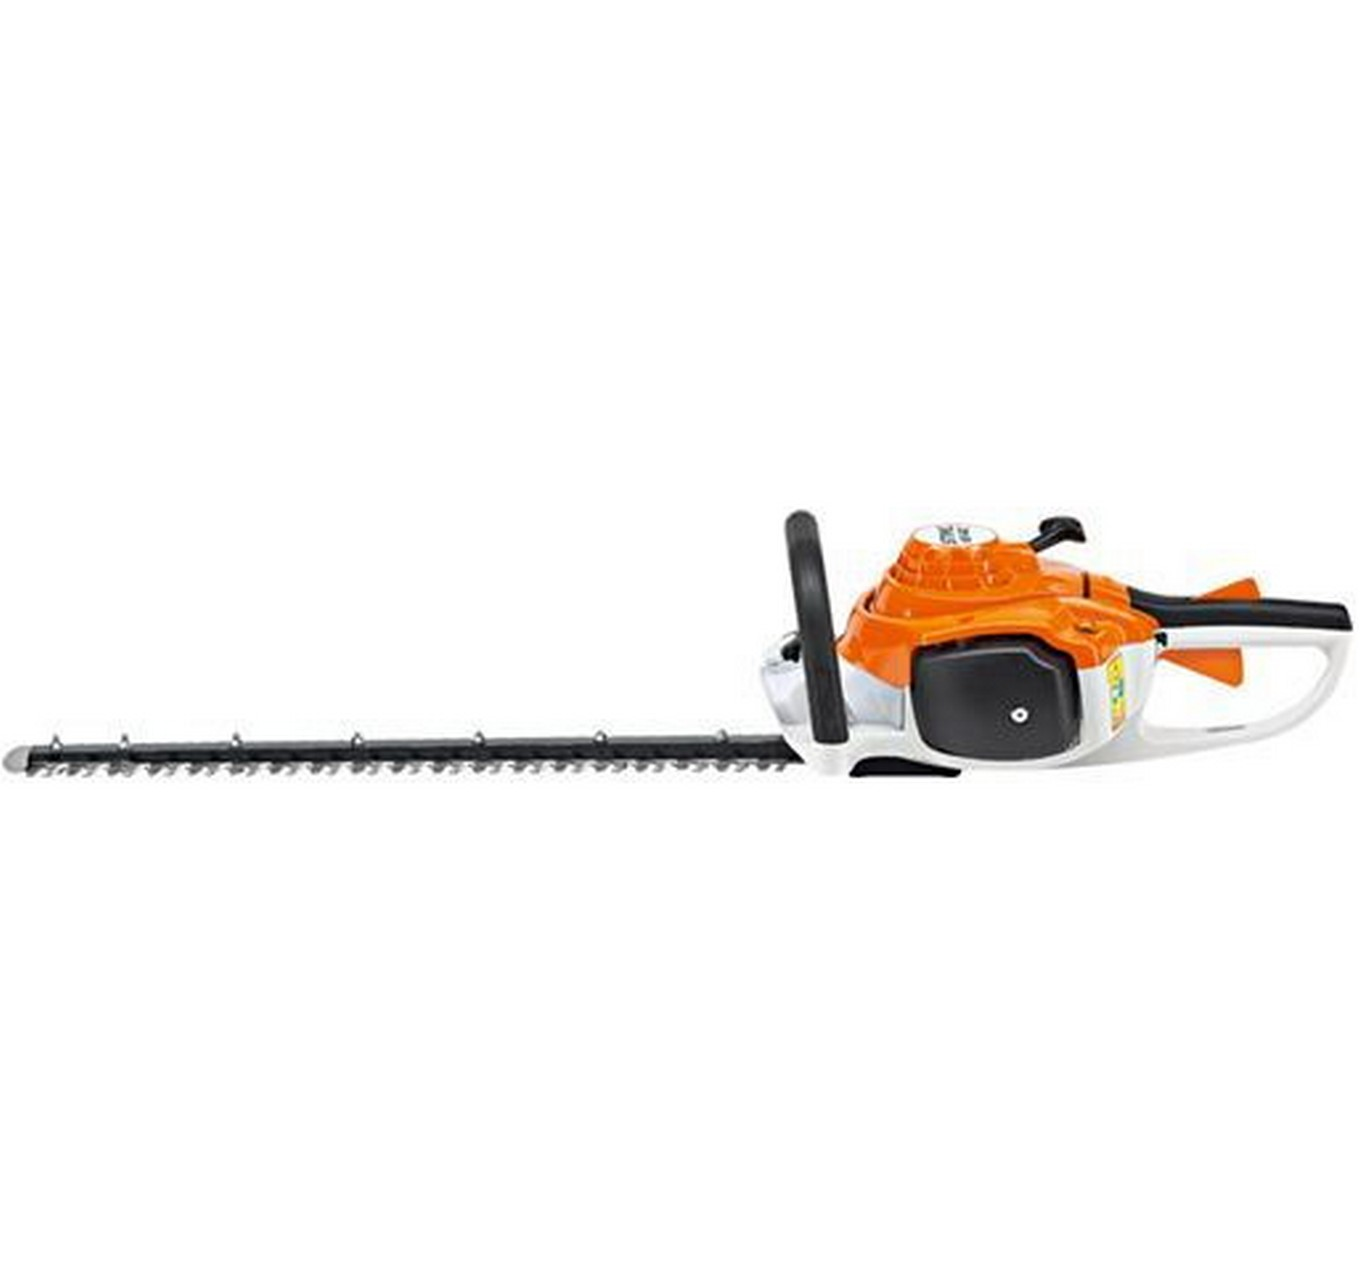 HS 46 C-E Hedge Trimmer 22